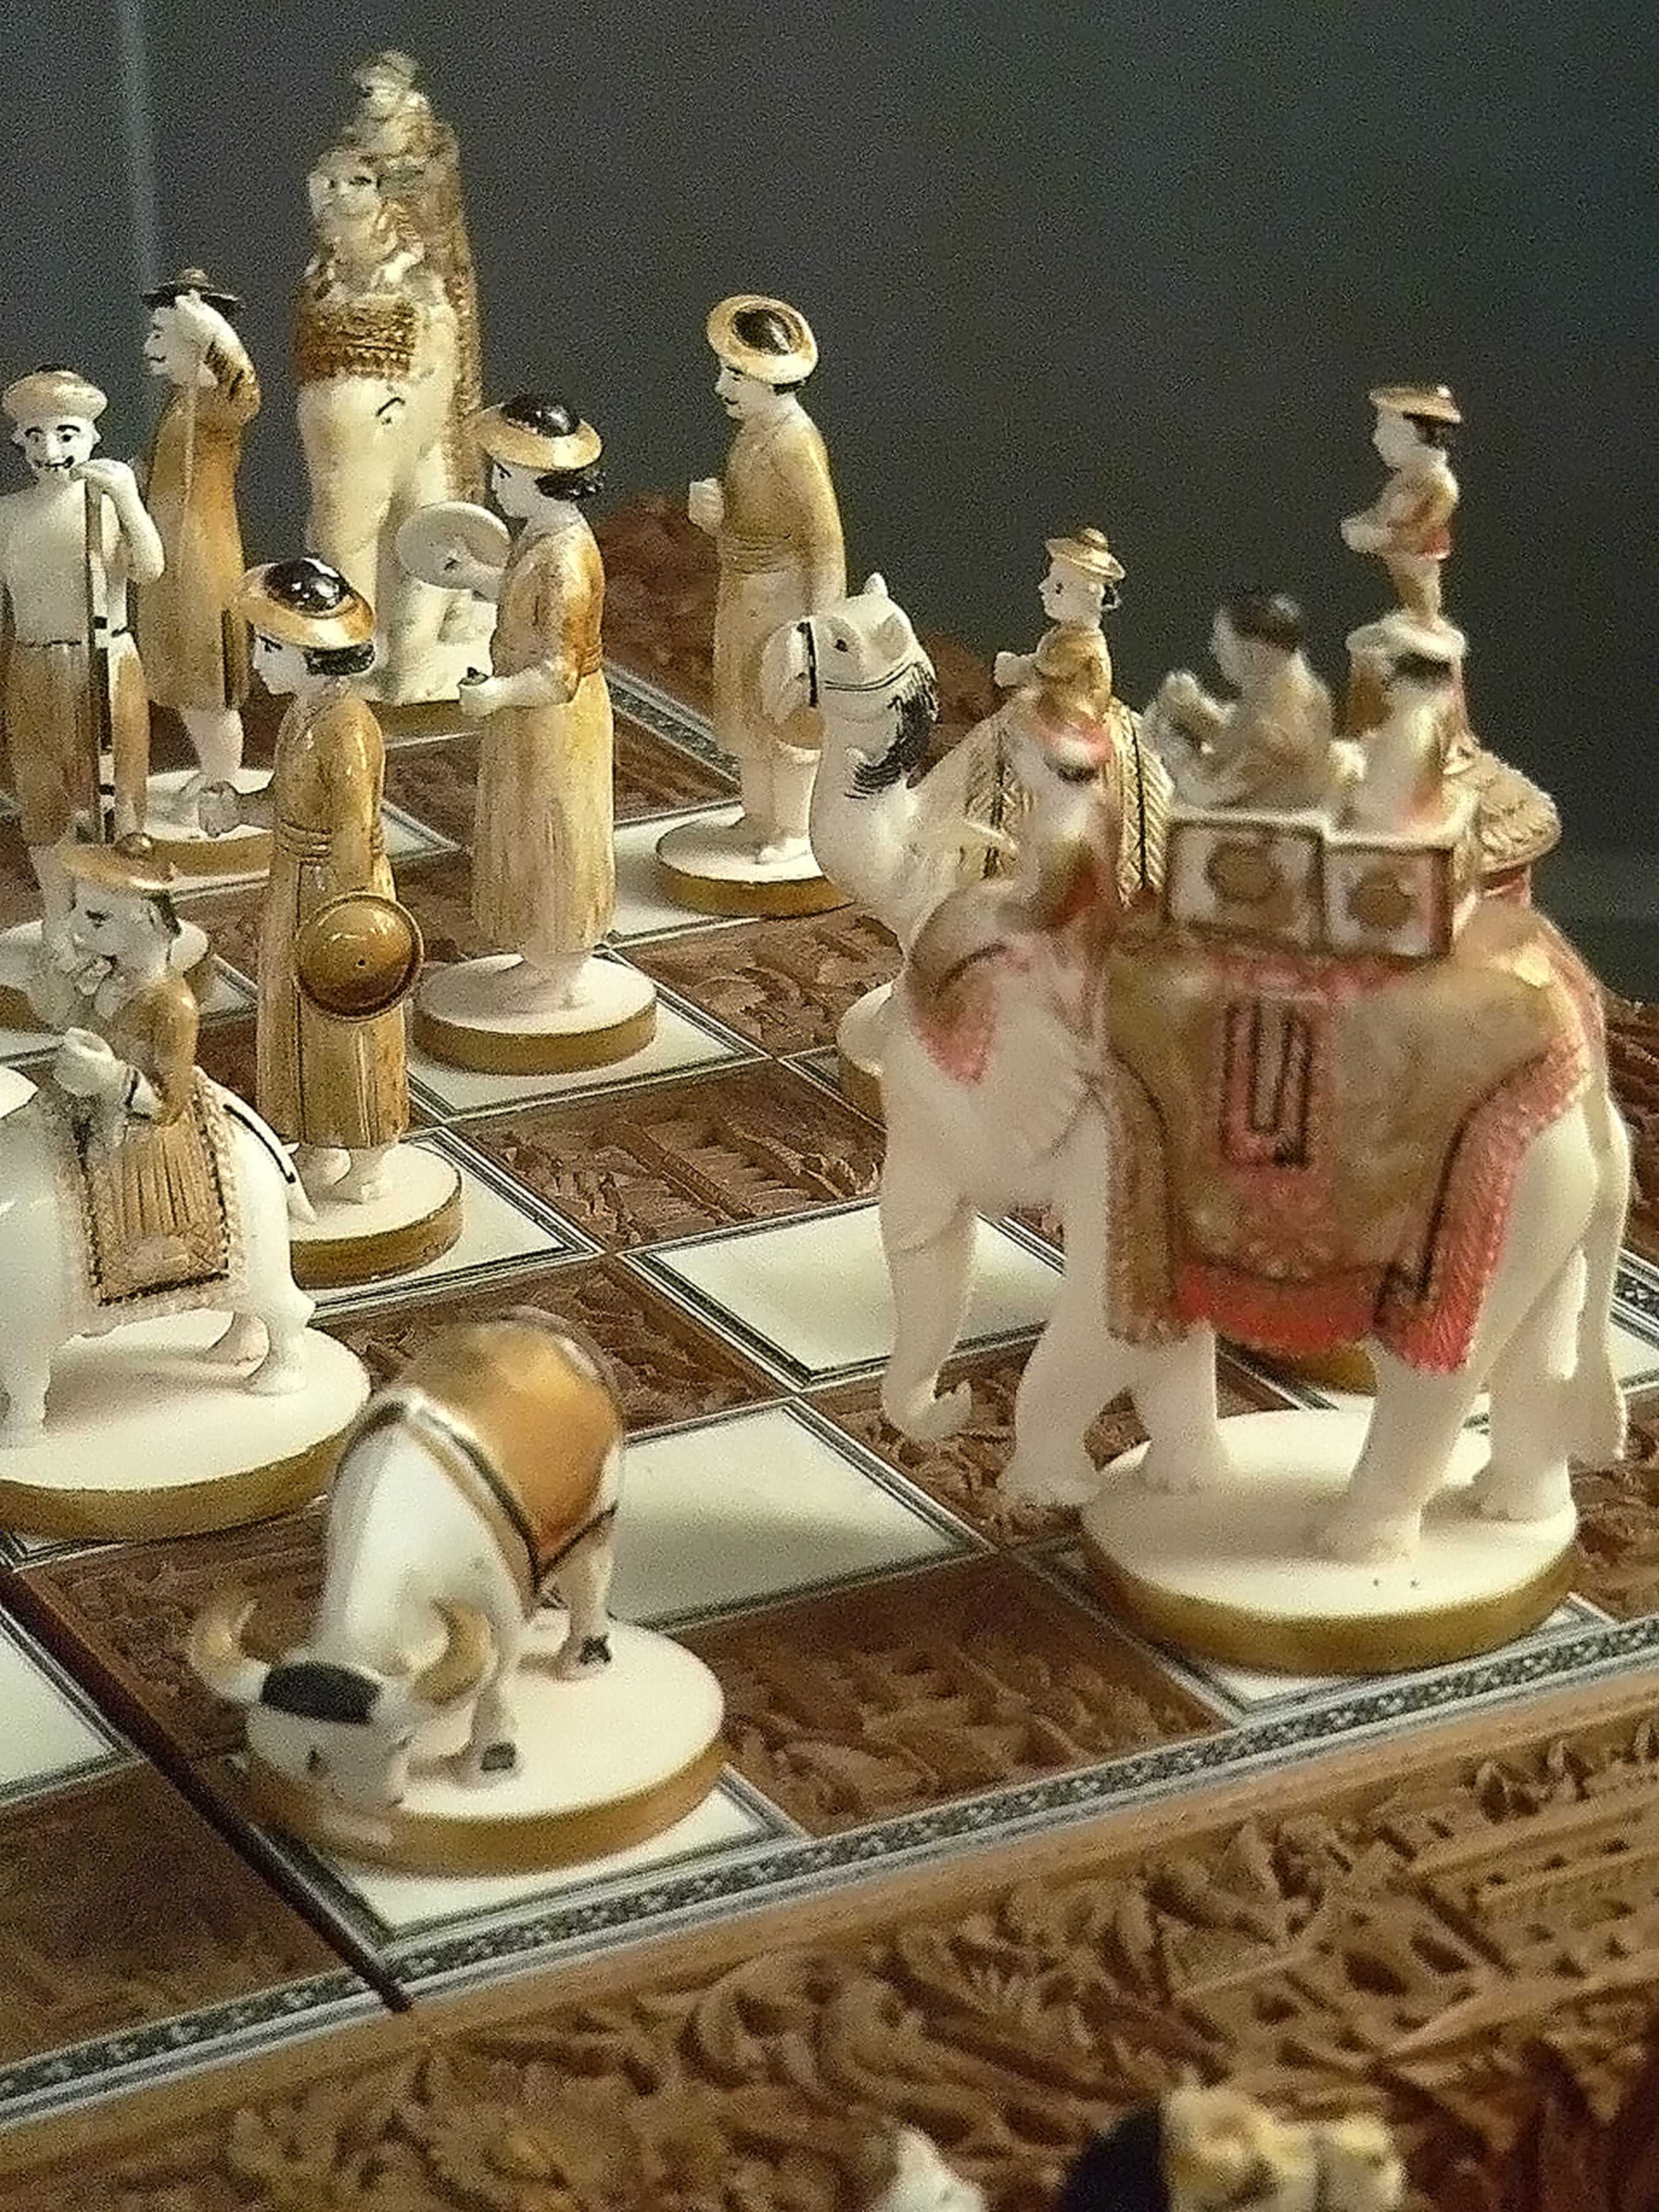 George E. Muehleck, Jr. Gallery of International Chess Sets 1